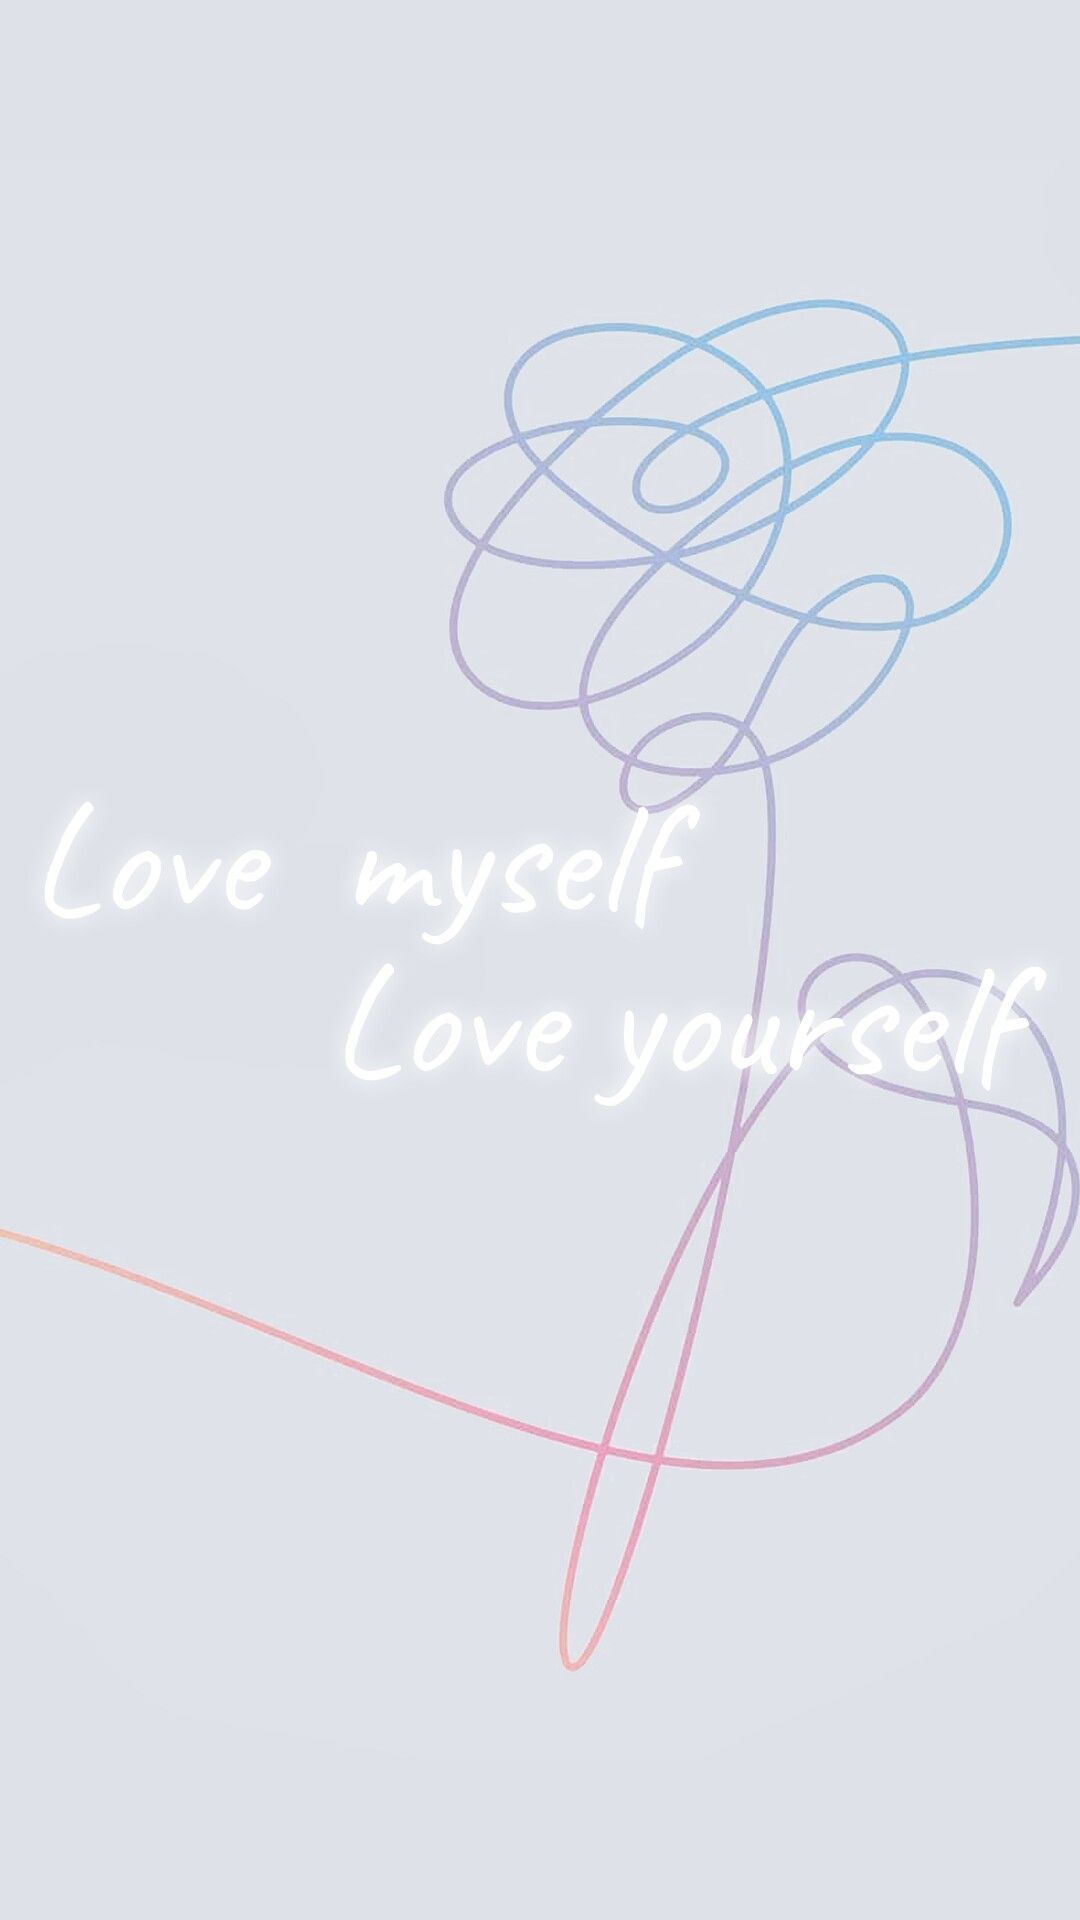 Awesome Love Yourself BTS Wallpapers - WallpaperAccess